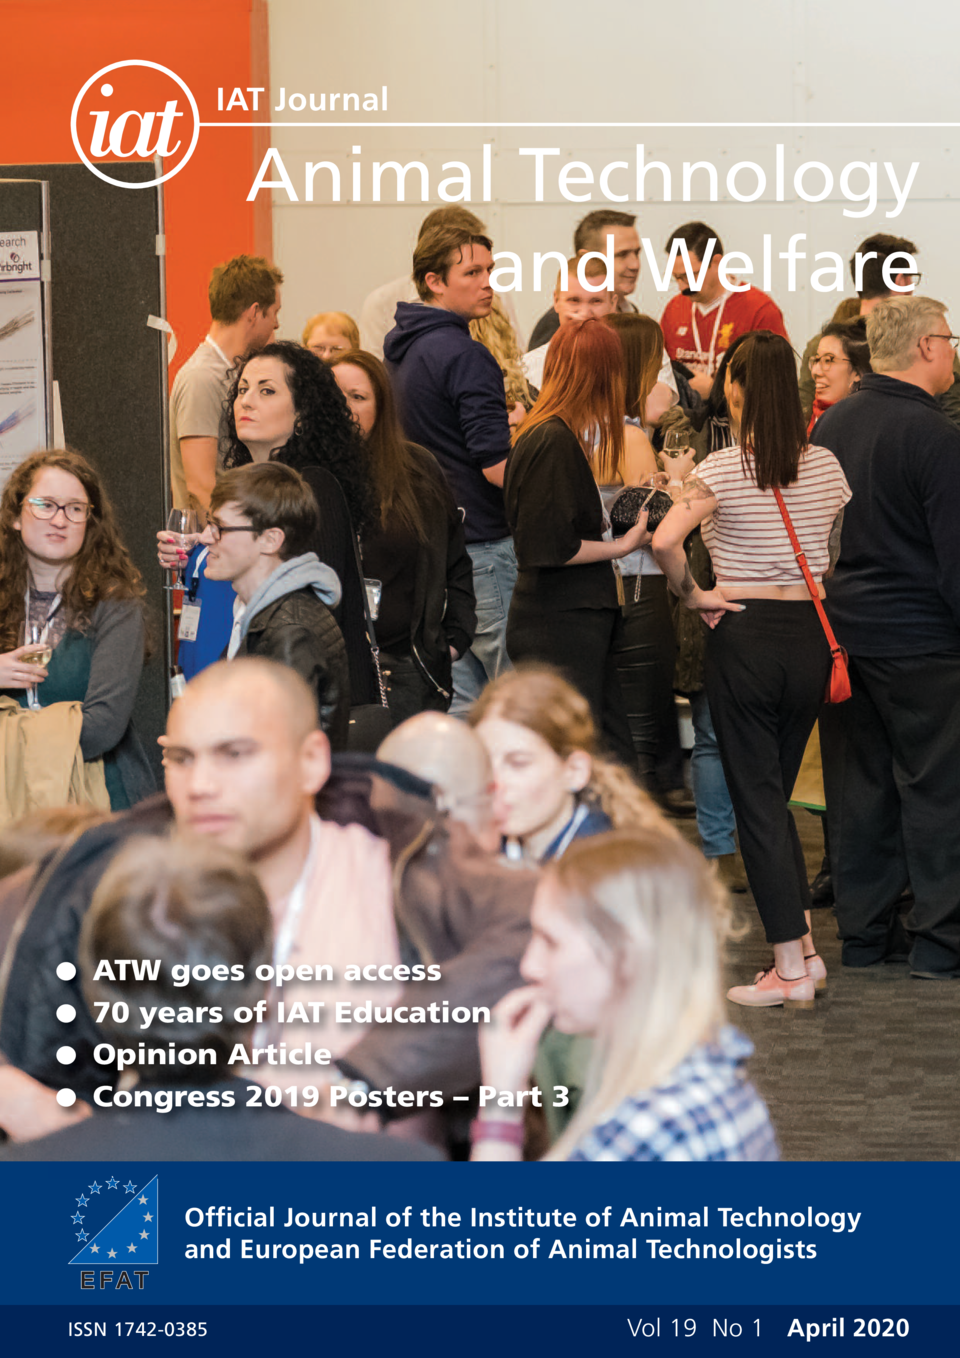 IAT Journal  Animal Technology and Welfare  G ATW goes open access  G 70 years of IAT Education G Opinion Article  G Congr...